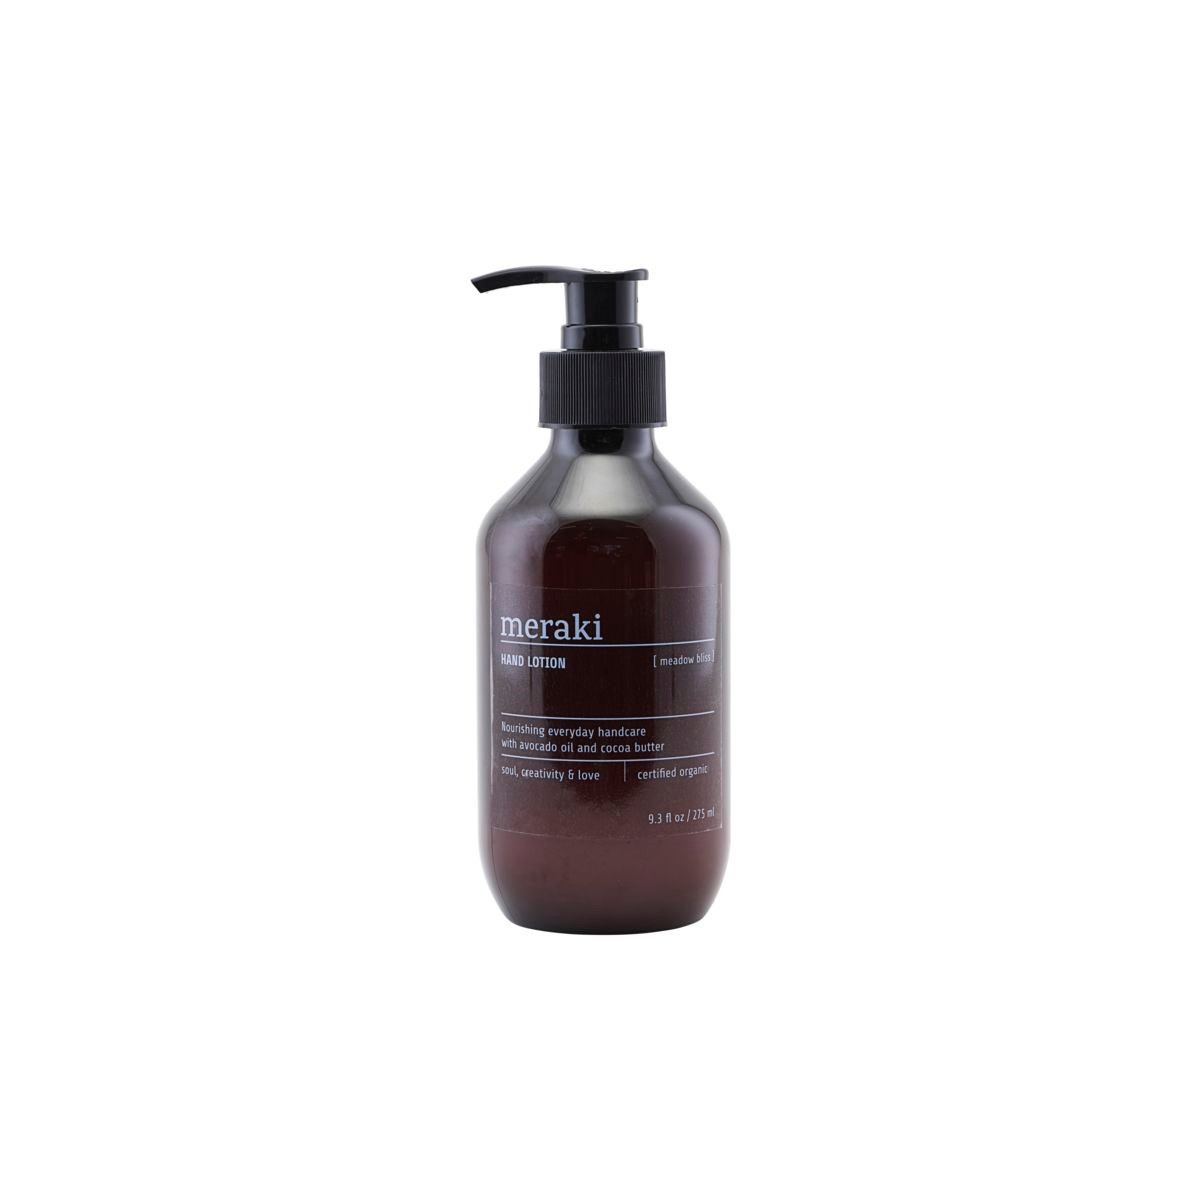 Meraki Hand Lotion Meadow Bliss